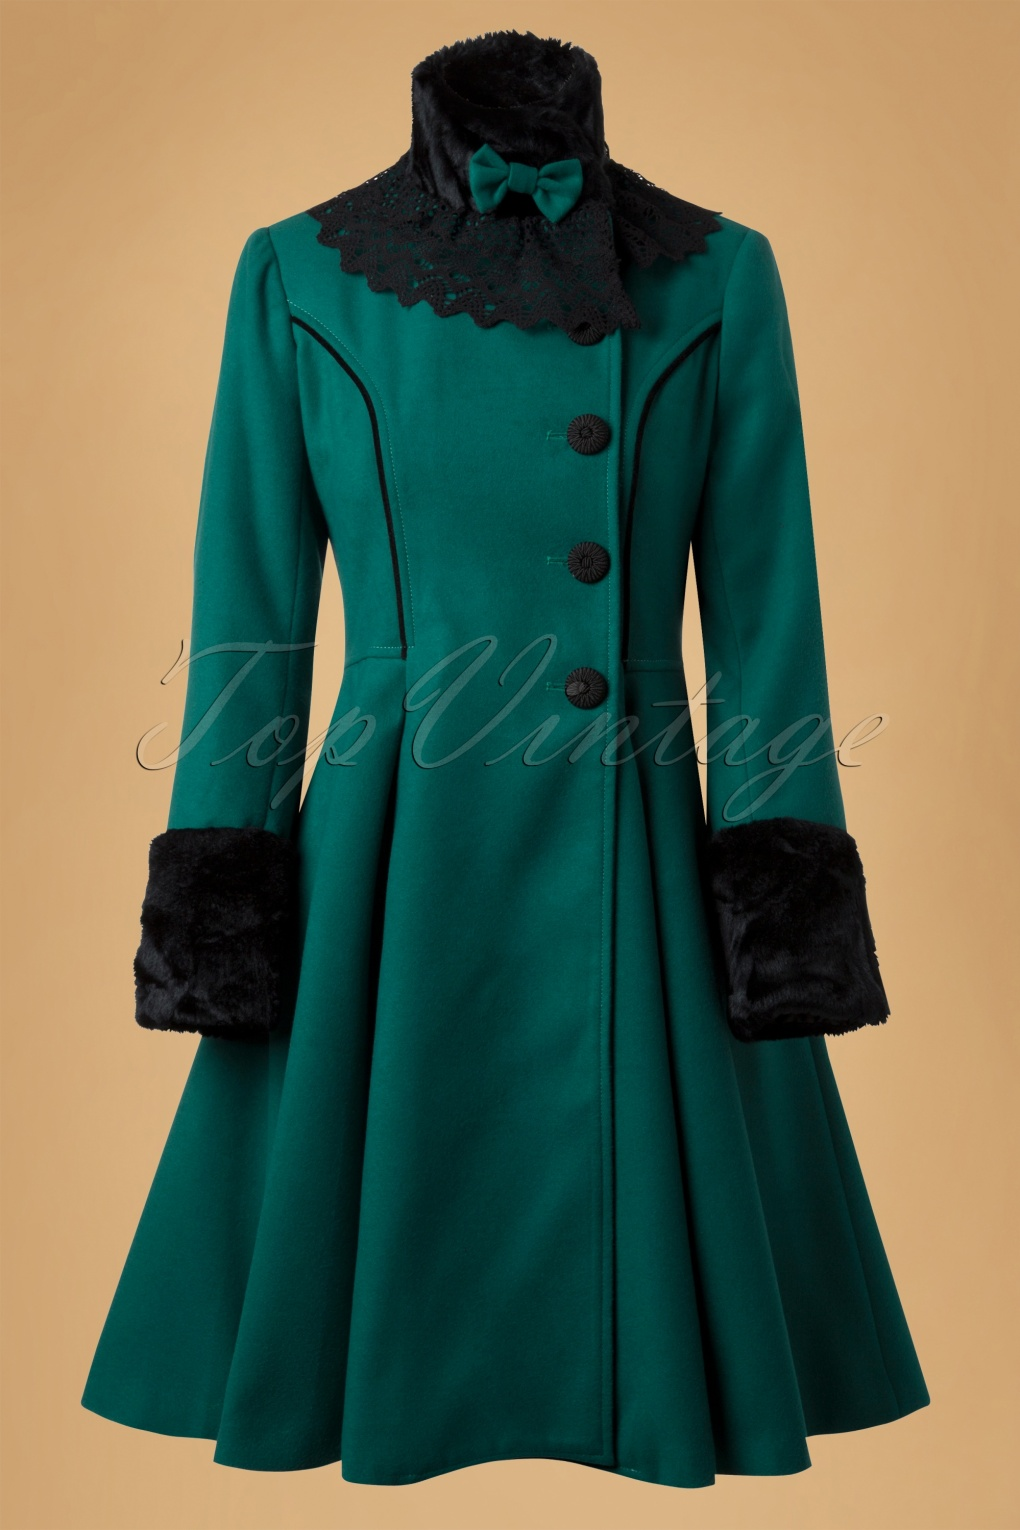 Vintage angeline coat in teal - Retro vintage ...